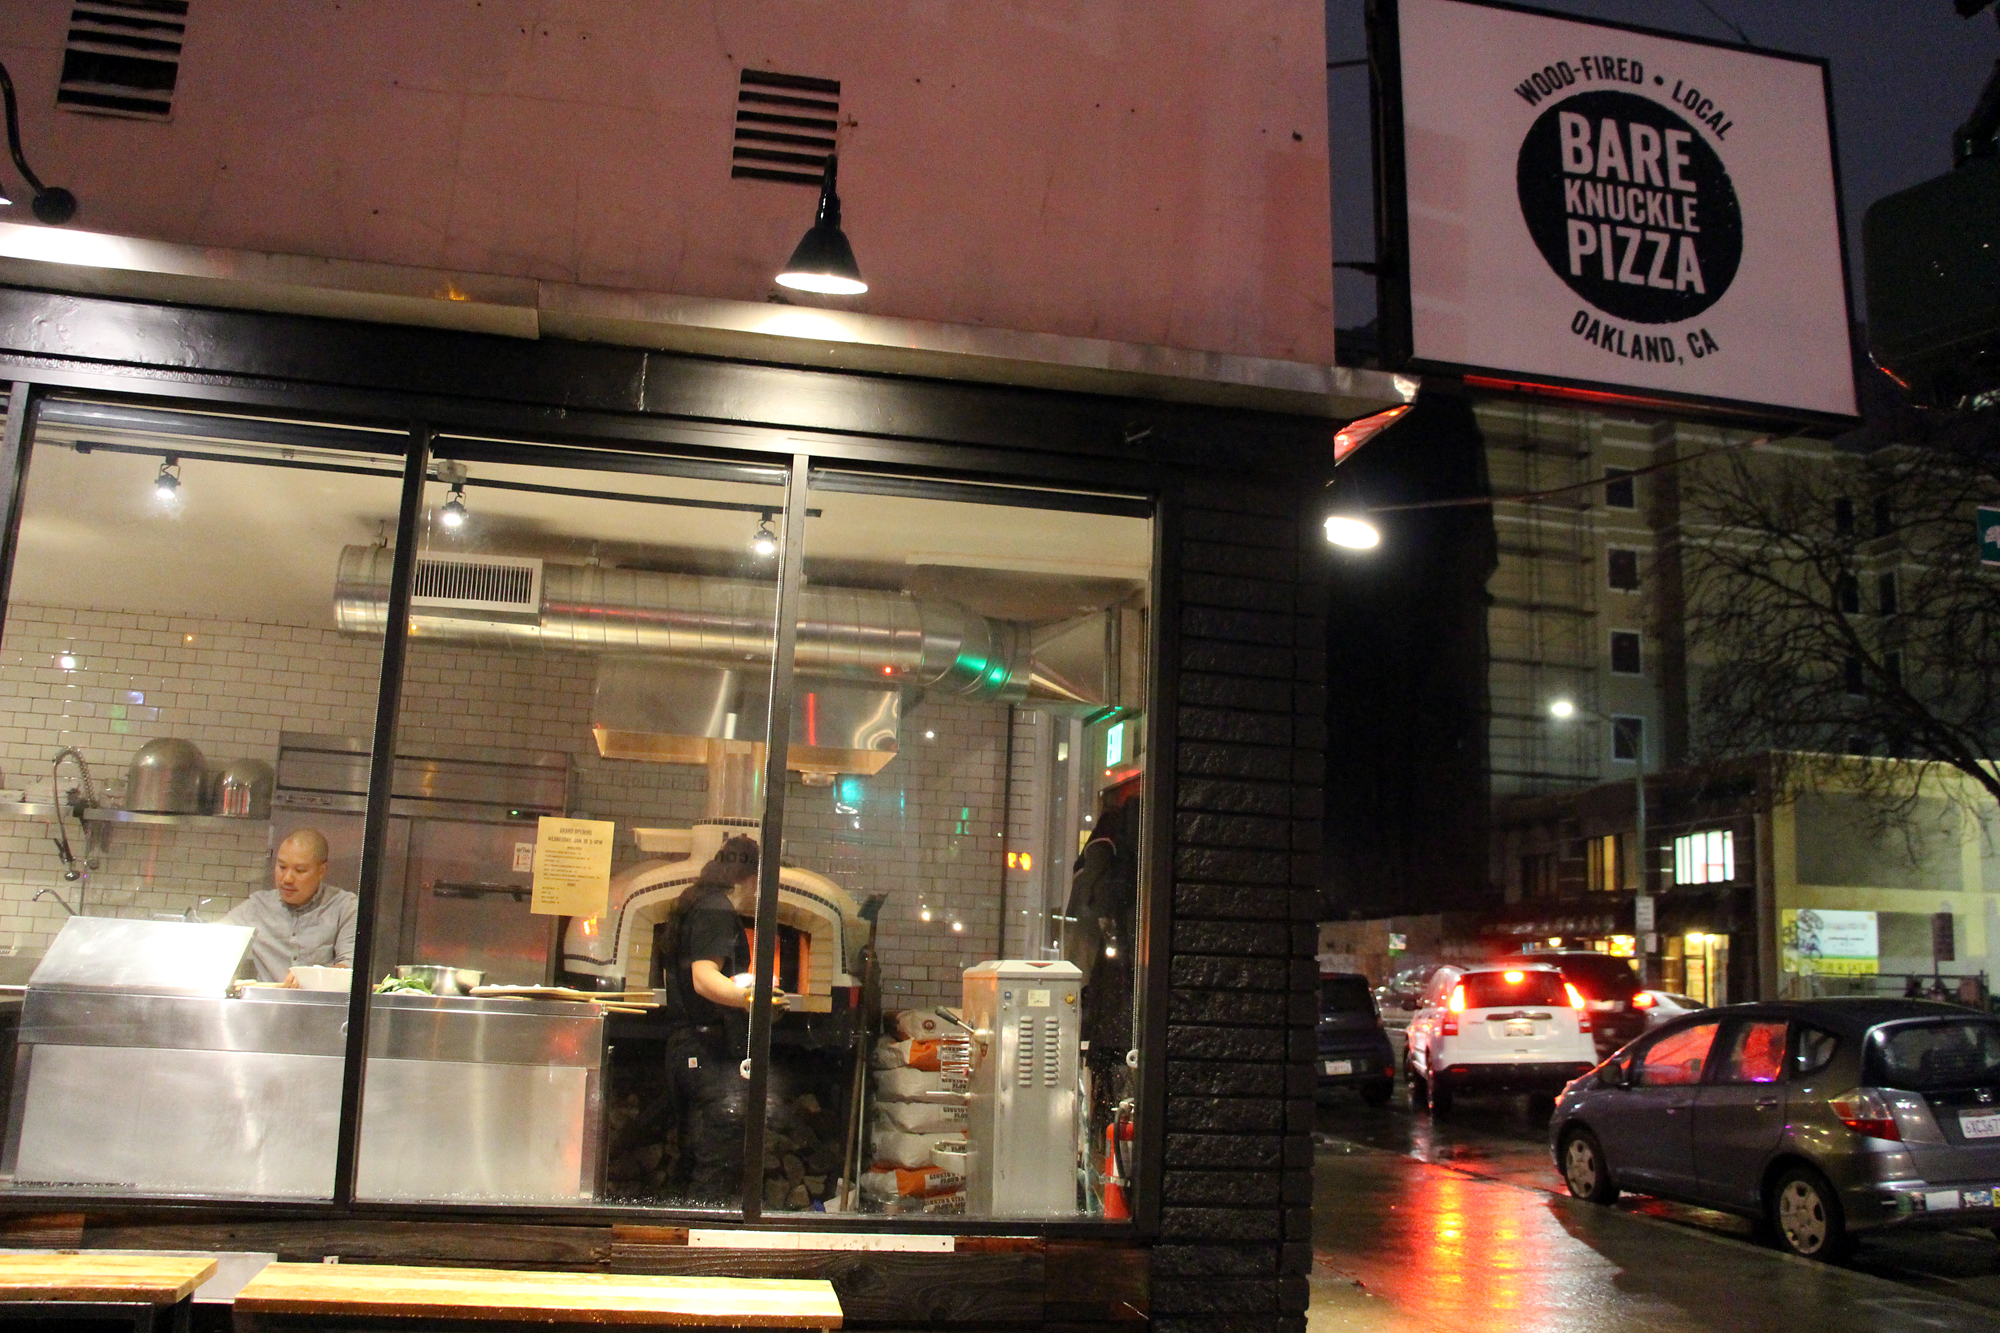 Bare Knuckle Pizza is located on the edge of Oakland's Chinatown.